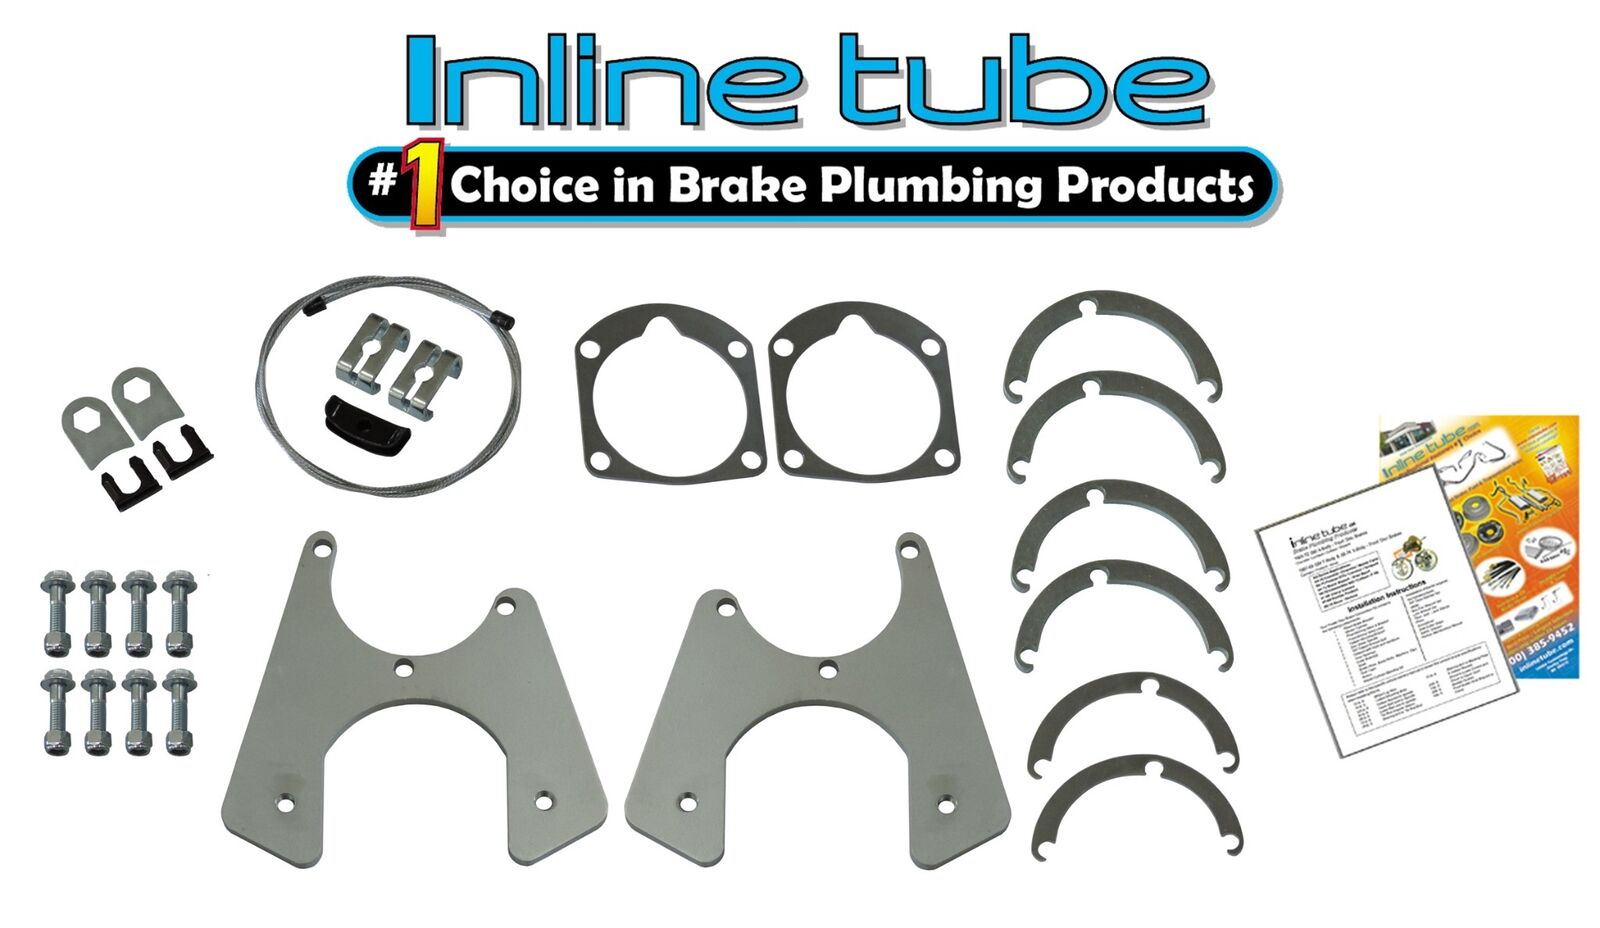 E-7-4 Inline Tube Brake and Fuel Line Clip Set Compatible with 1955-57 Chevy Bel Air and Chevrolet Impala